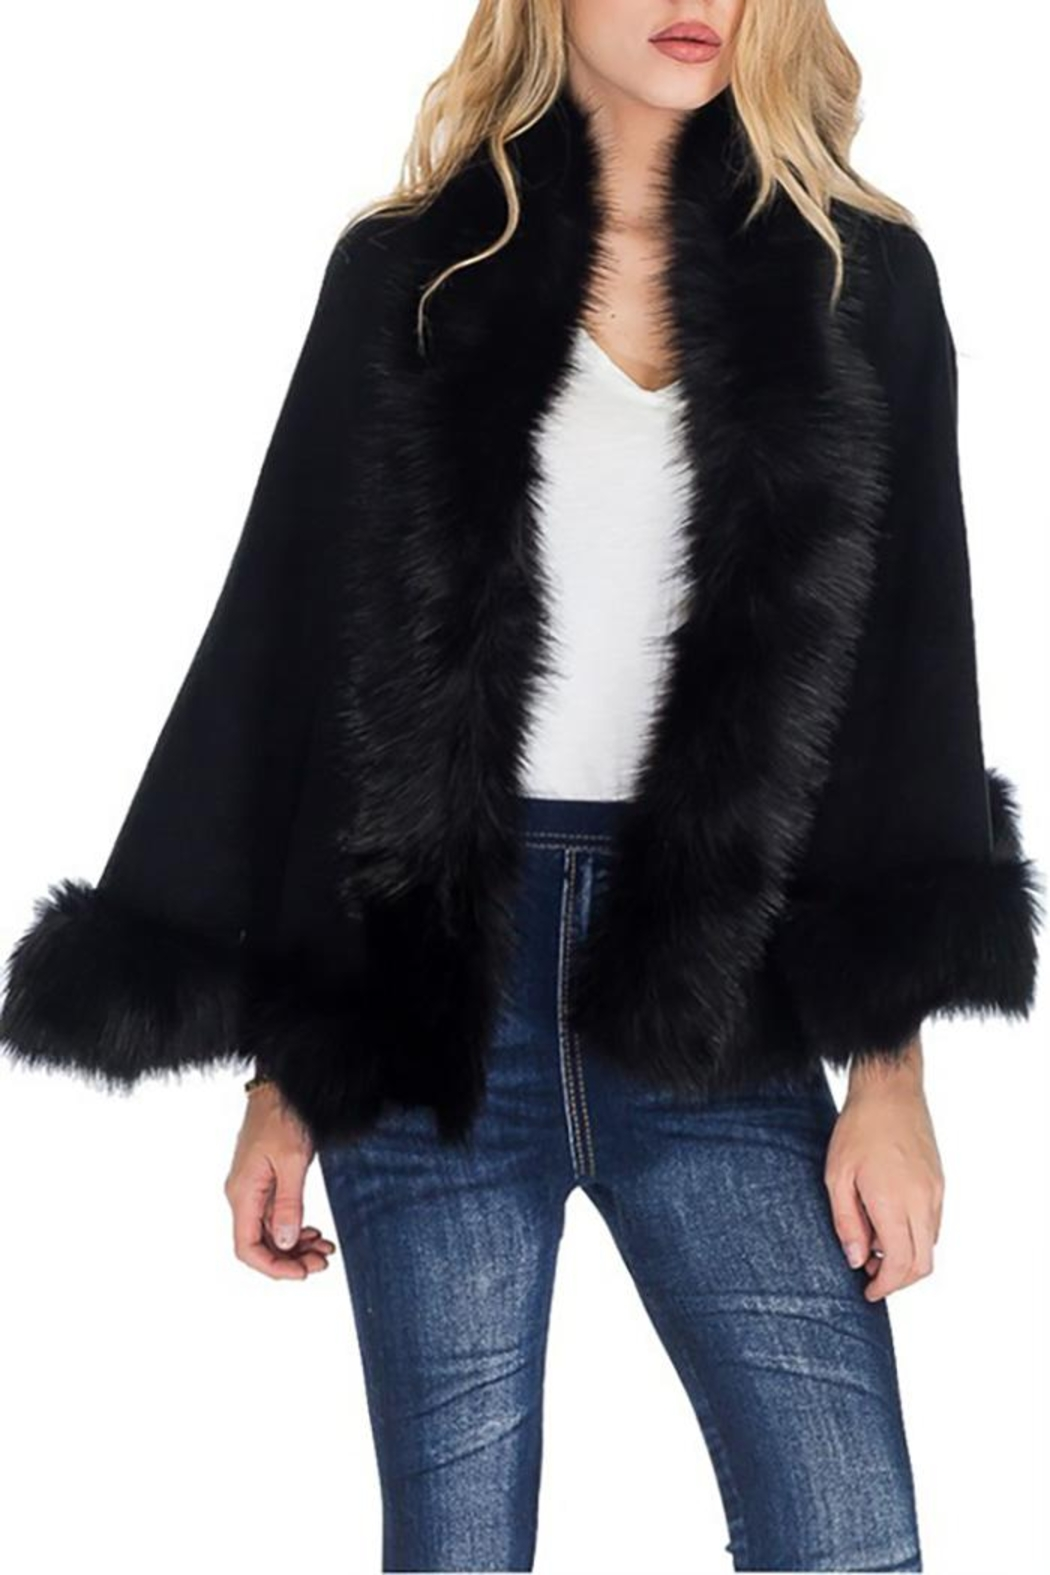 Cap Zone Single Layered Open Silhouette Cape With Faux Fur - Front Cropped Image